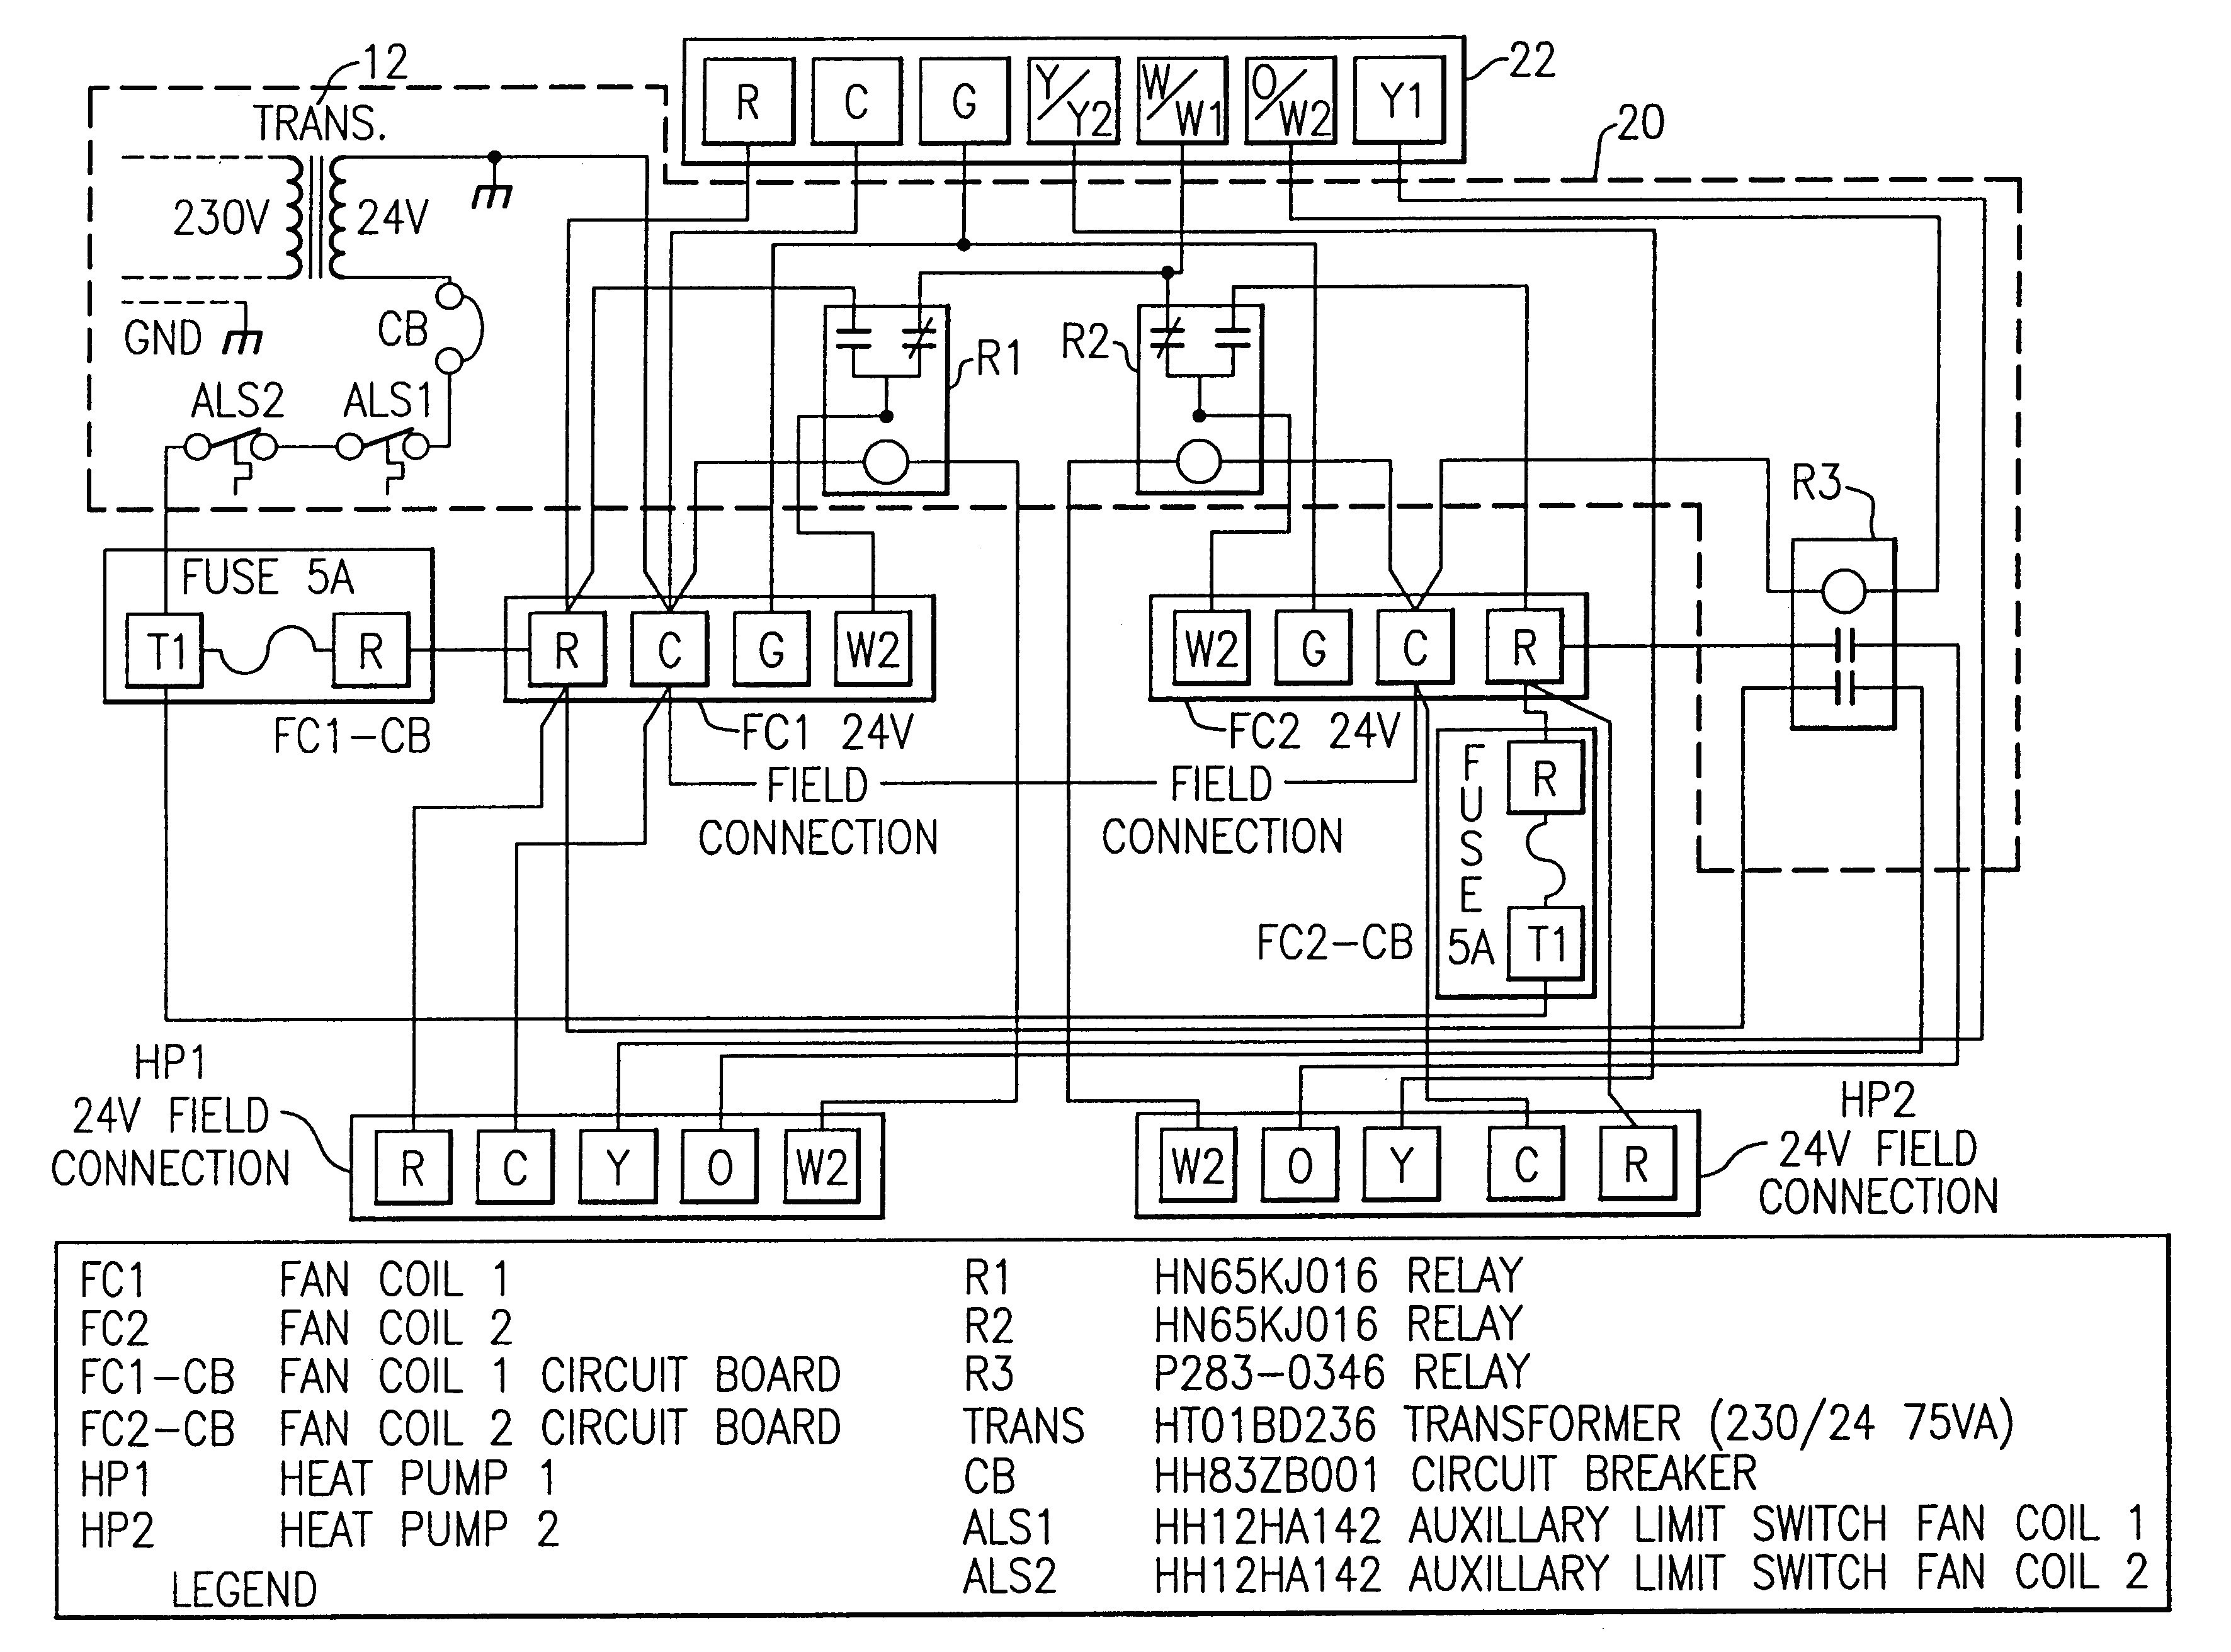 Ruud Heat Pump Wiring Diagram Stunning Wiring Diagram for Heat Pump Everything You Need Of Ruud Heat Pump Wiring Diagram